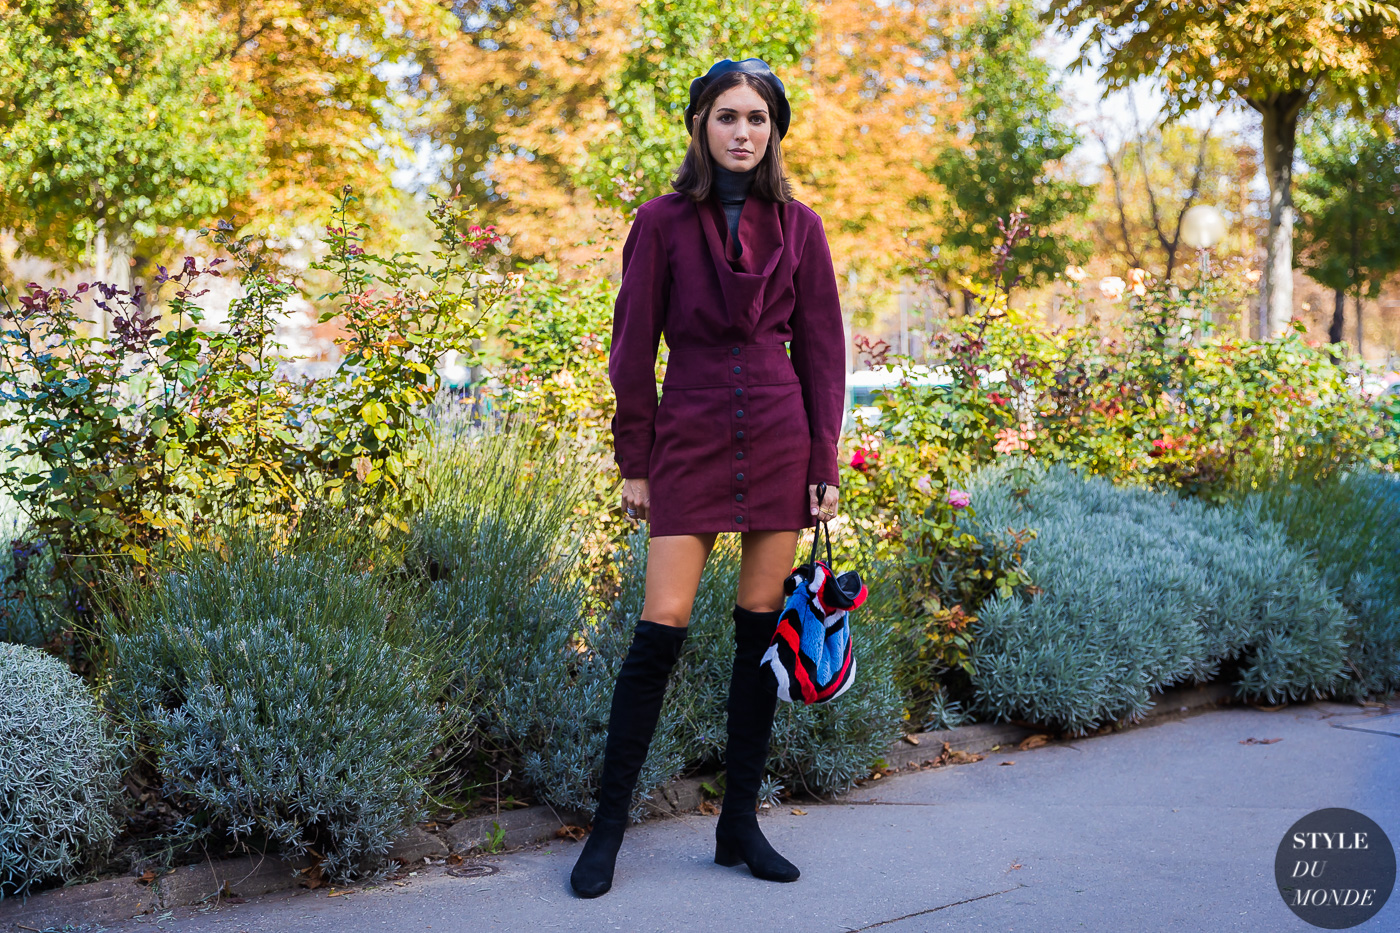 Diletta Bonaiuti by STYLEDUMONDE Street Style Fashion Photography_48A2408